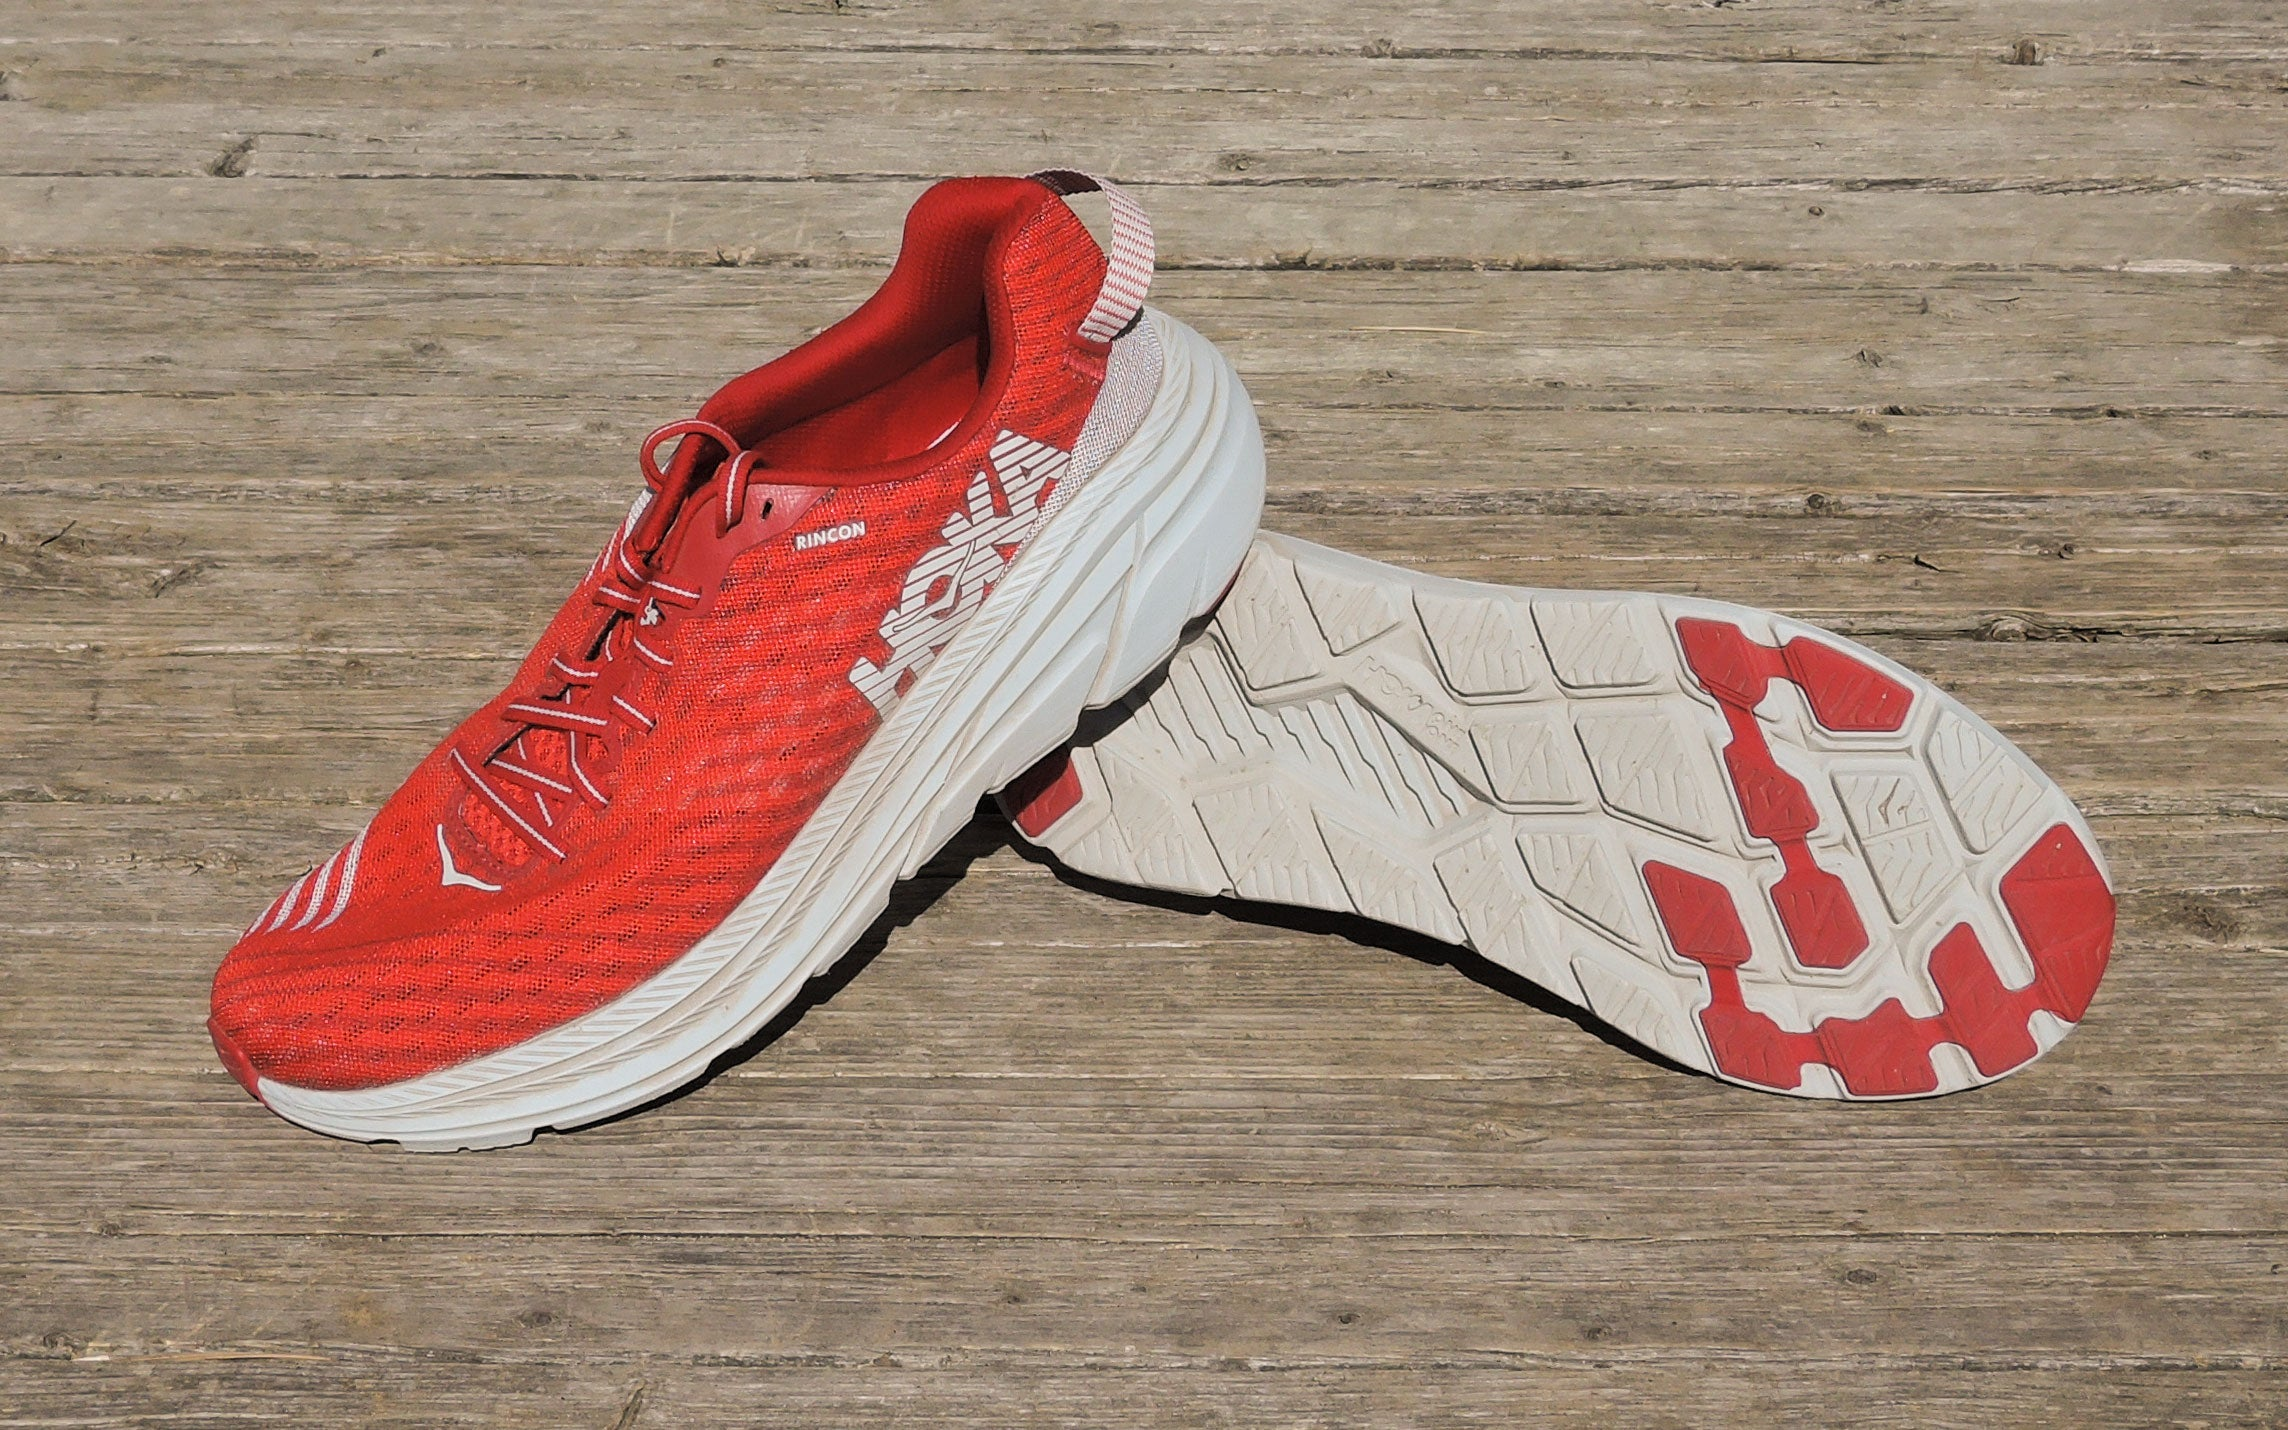 HOKA rincon running shoes for trails on a wood background in pink, red and white